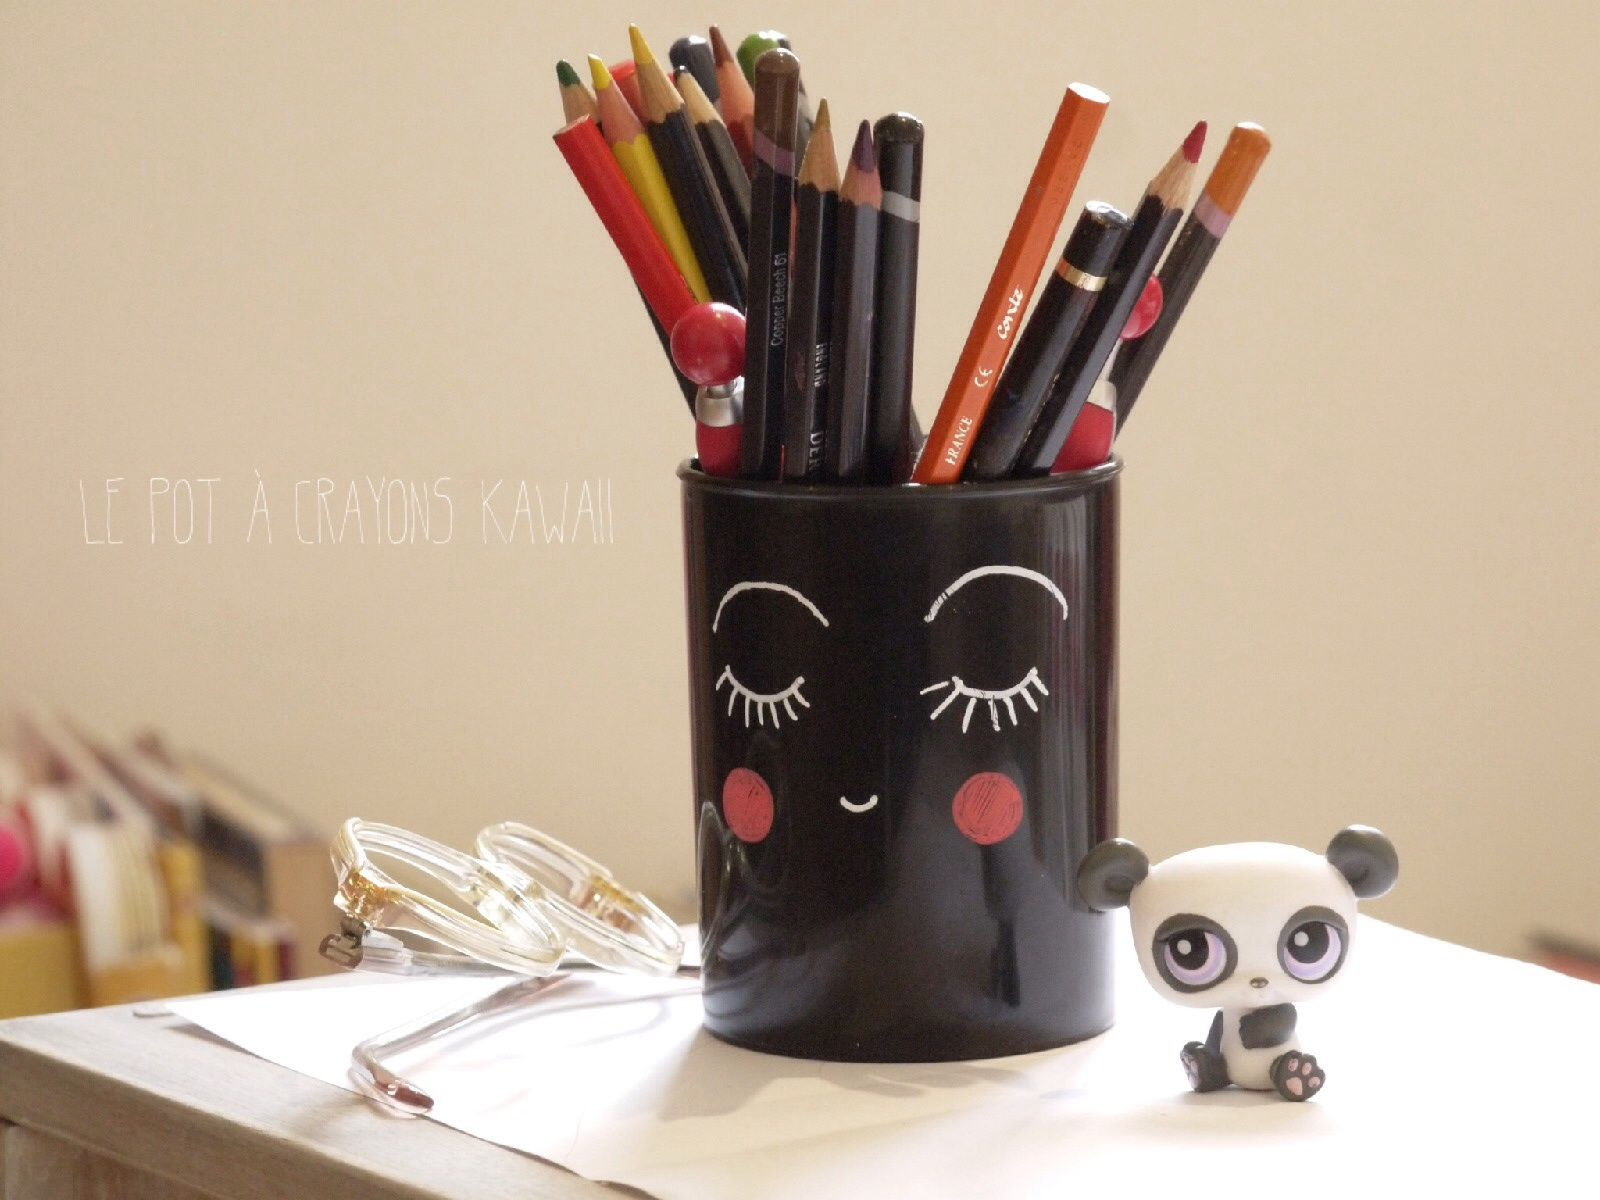 pot crayons kawaii pots crayons pinterest kawaii crayon et pots. Black Bedroom Furniture Sets. Home Design Ideas